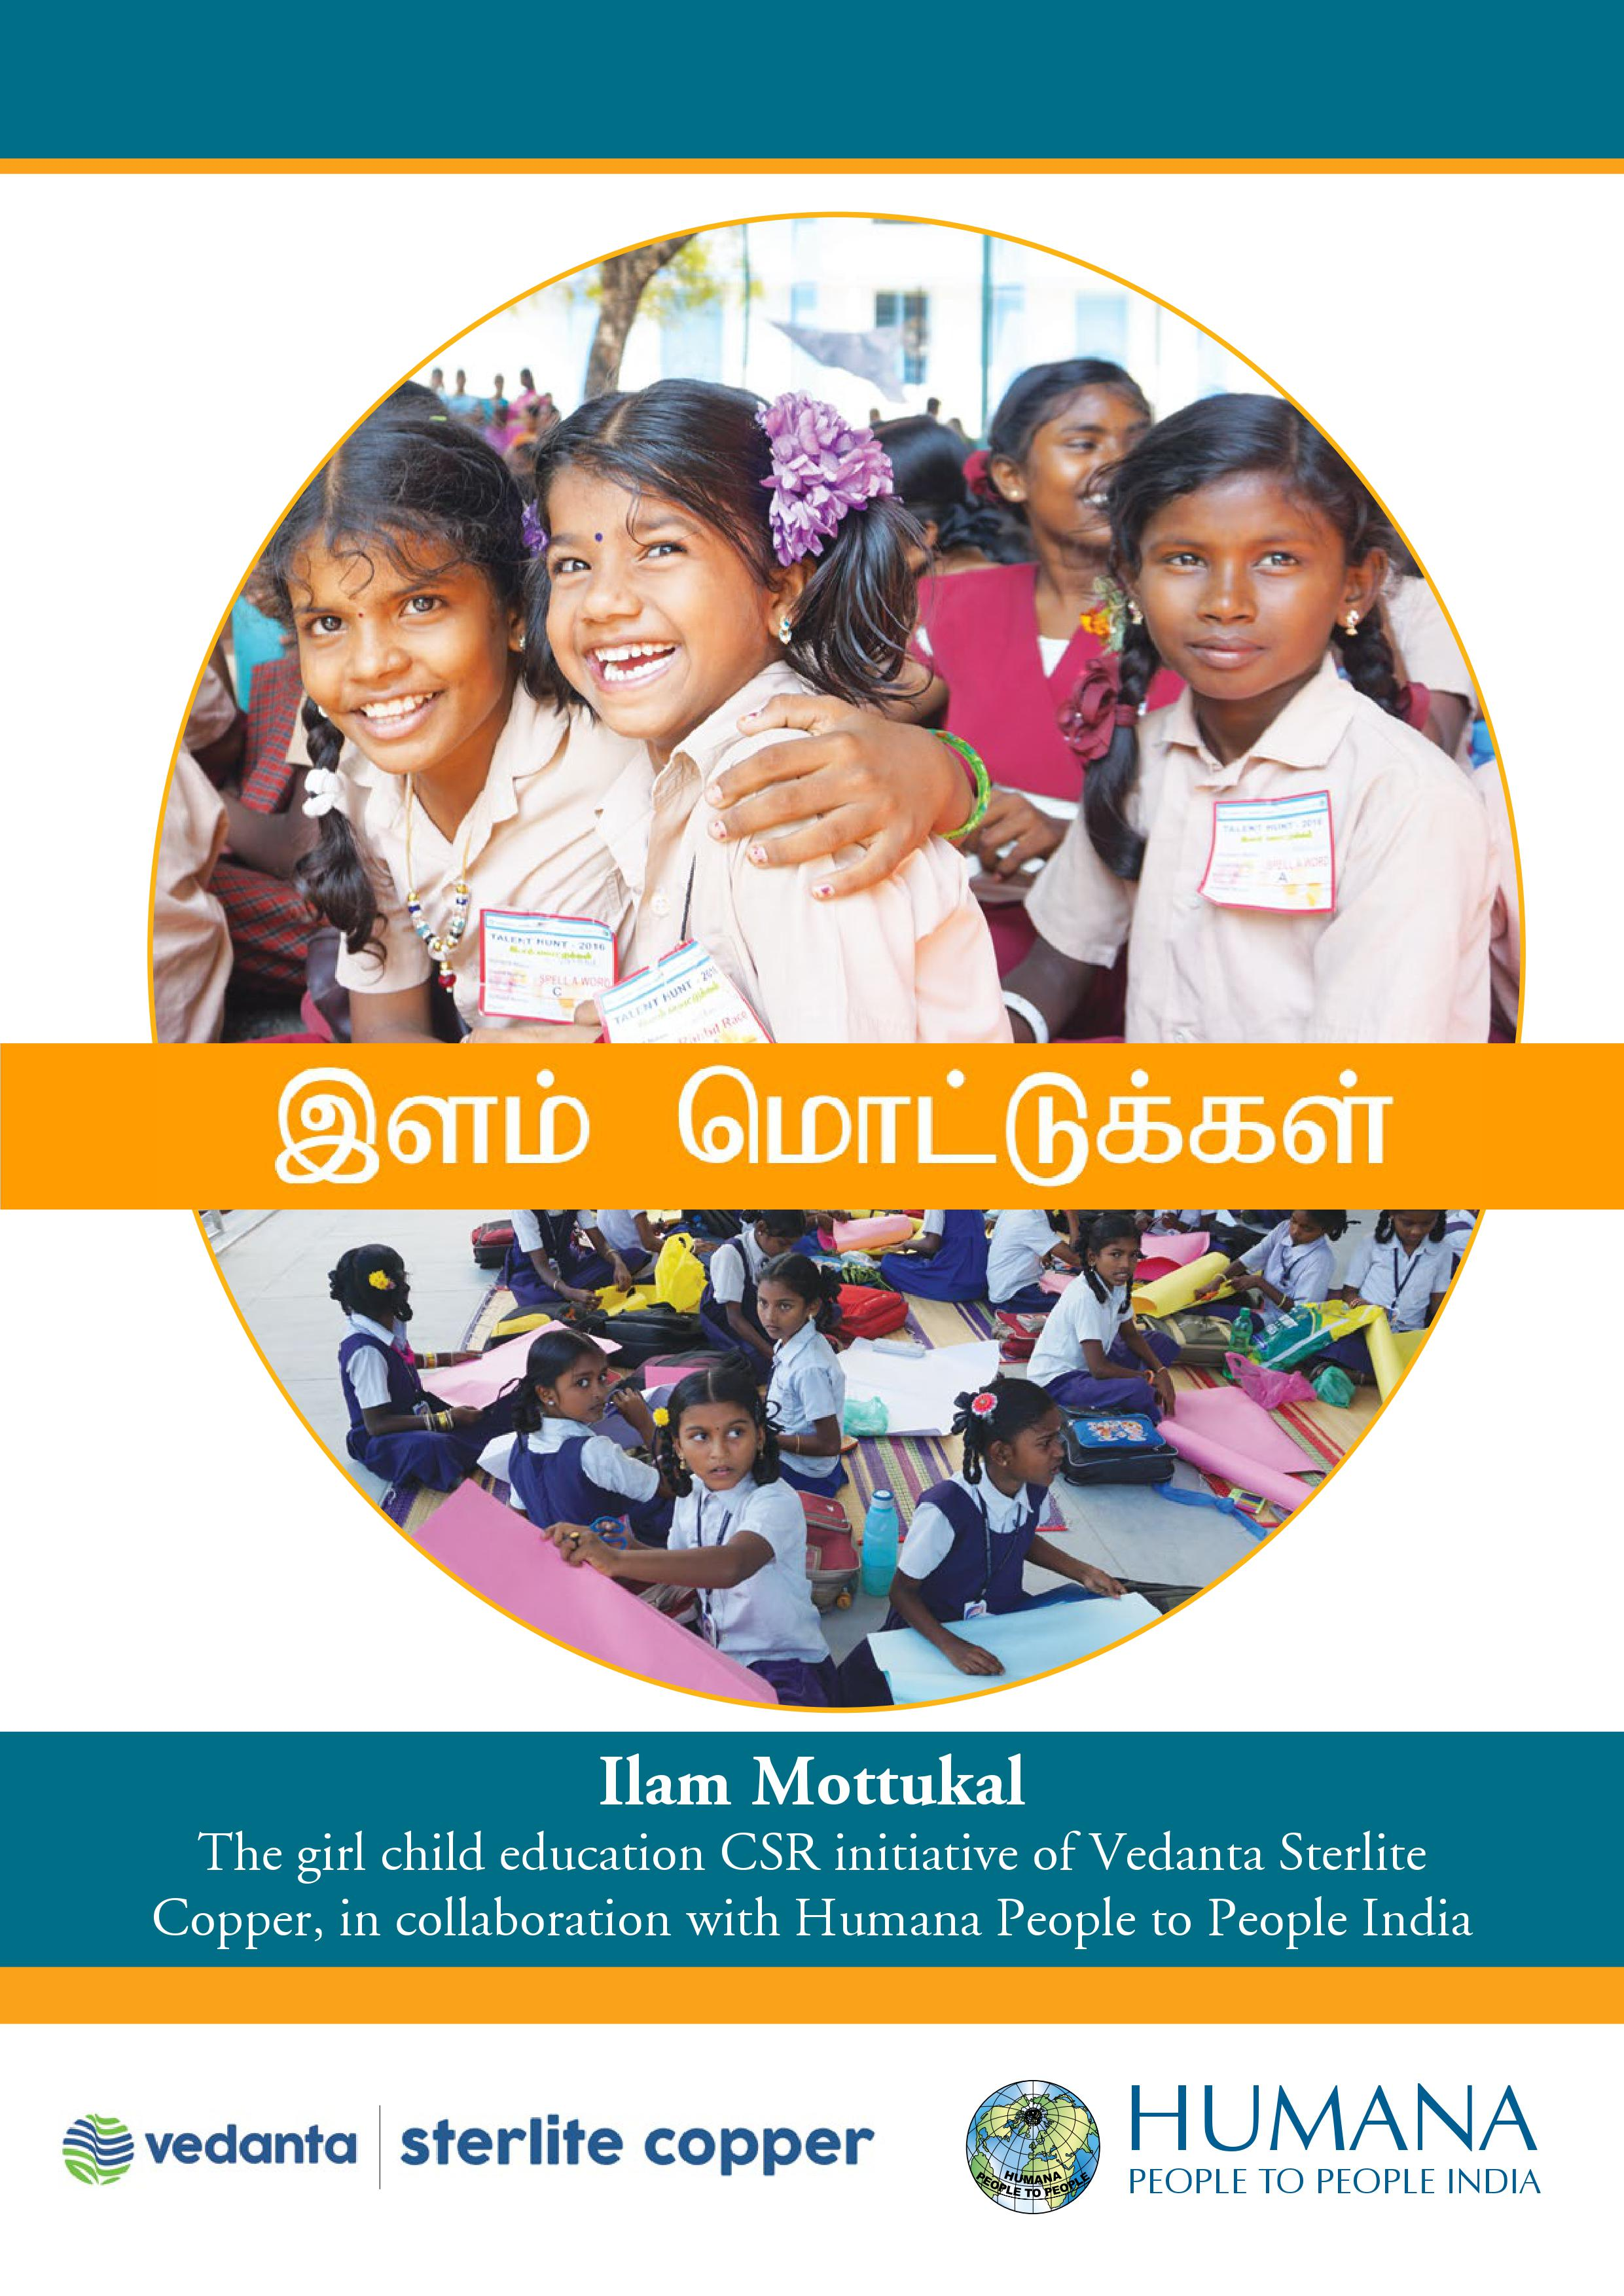 Ilam Mottukal - a learning enhancement programme for 8000 girls in Tamil Nadu